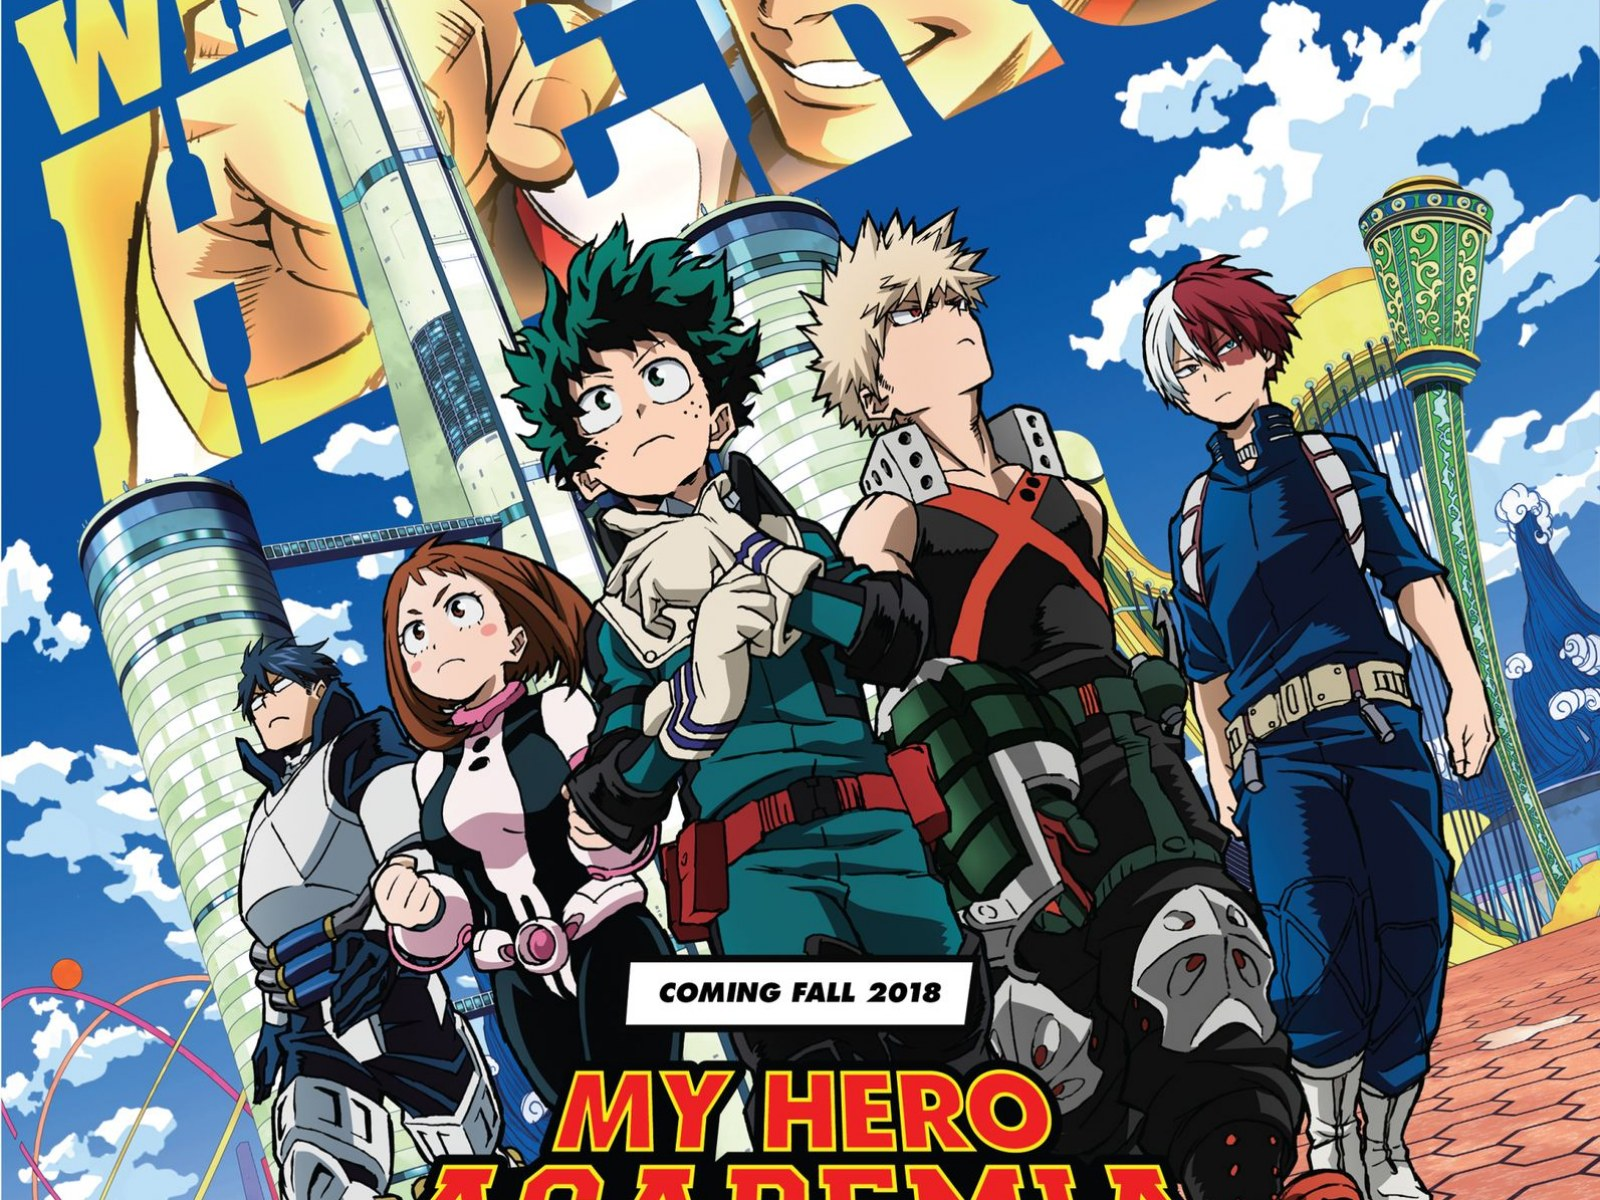 My Hero Academia Movie To Premiere At Anime Expo 2018